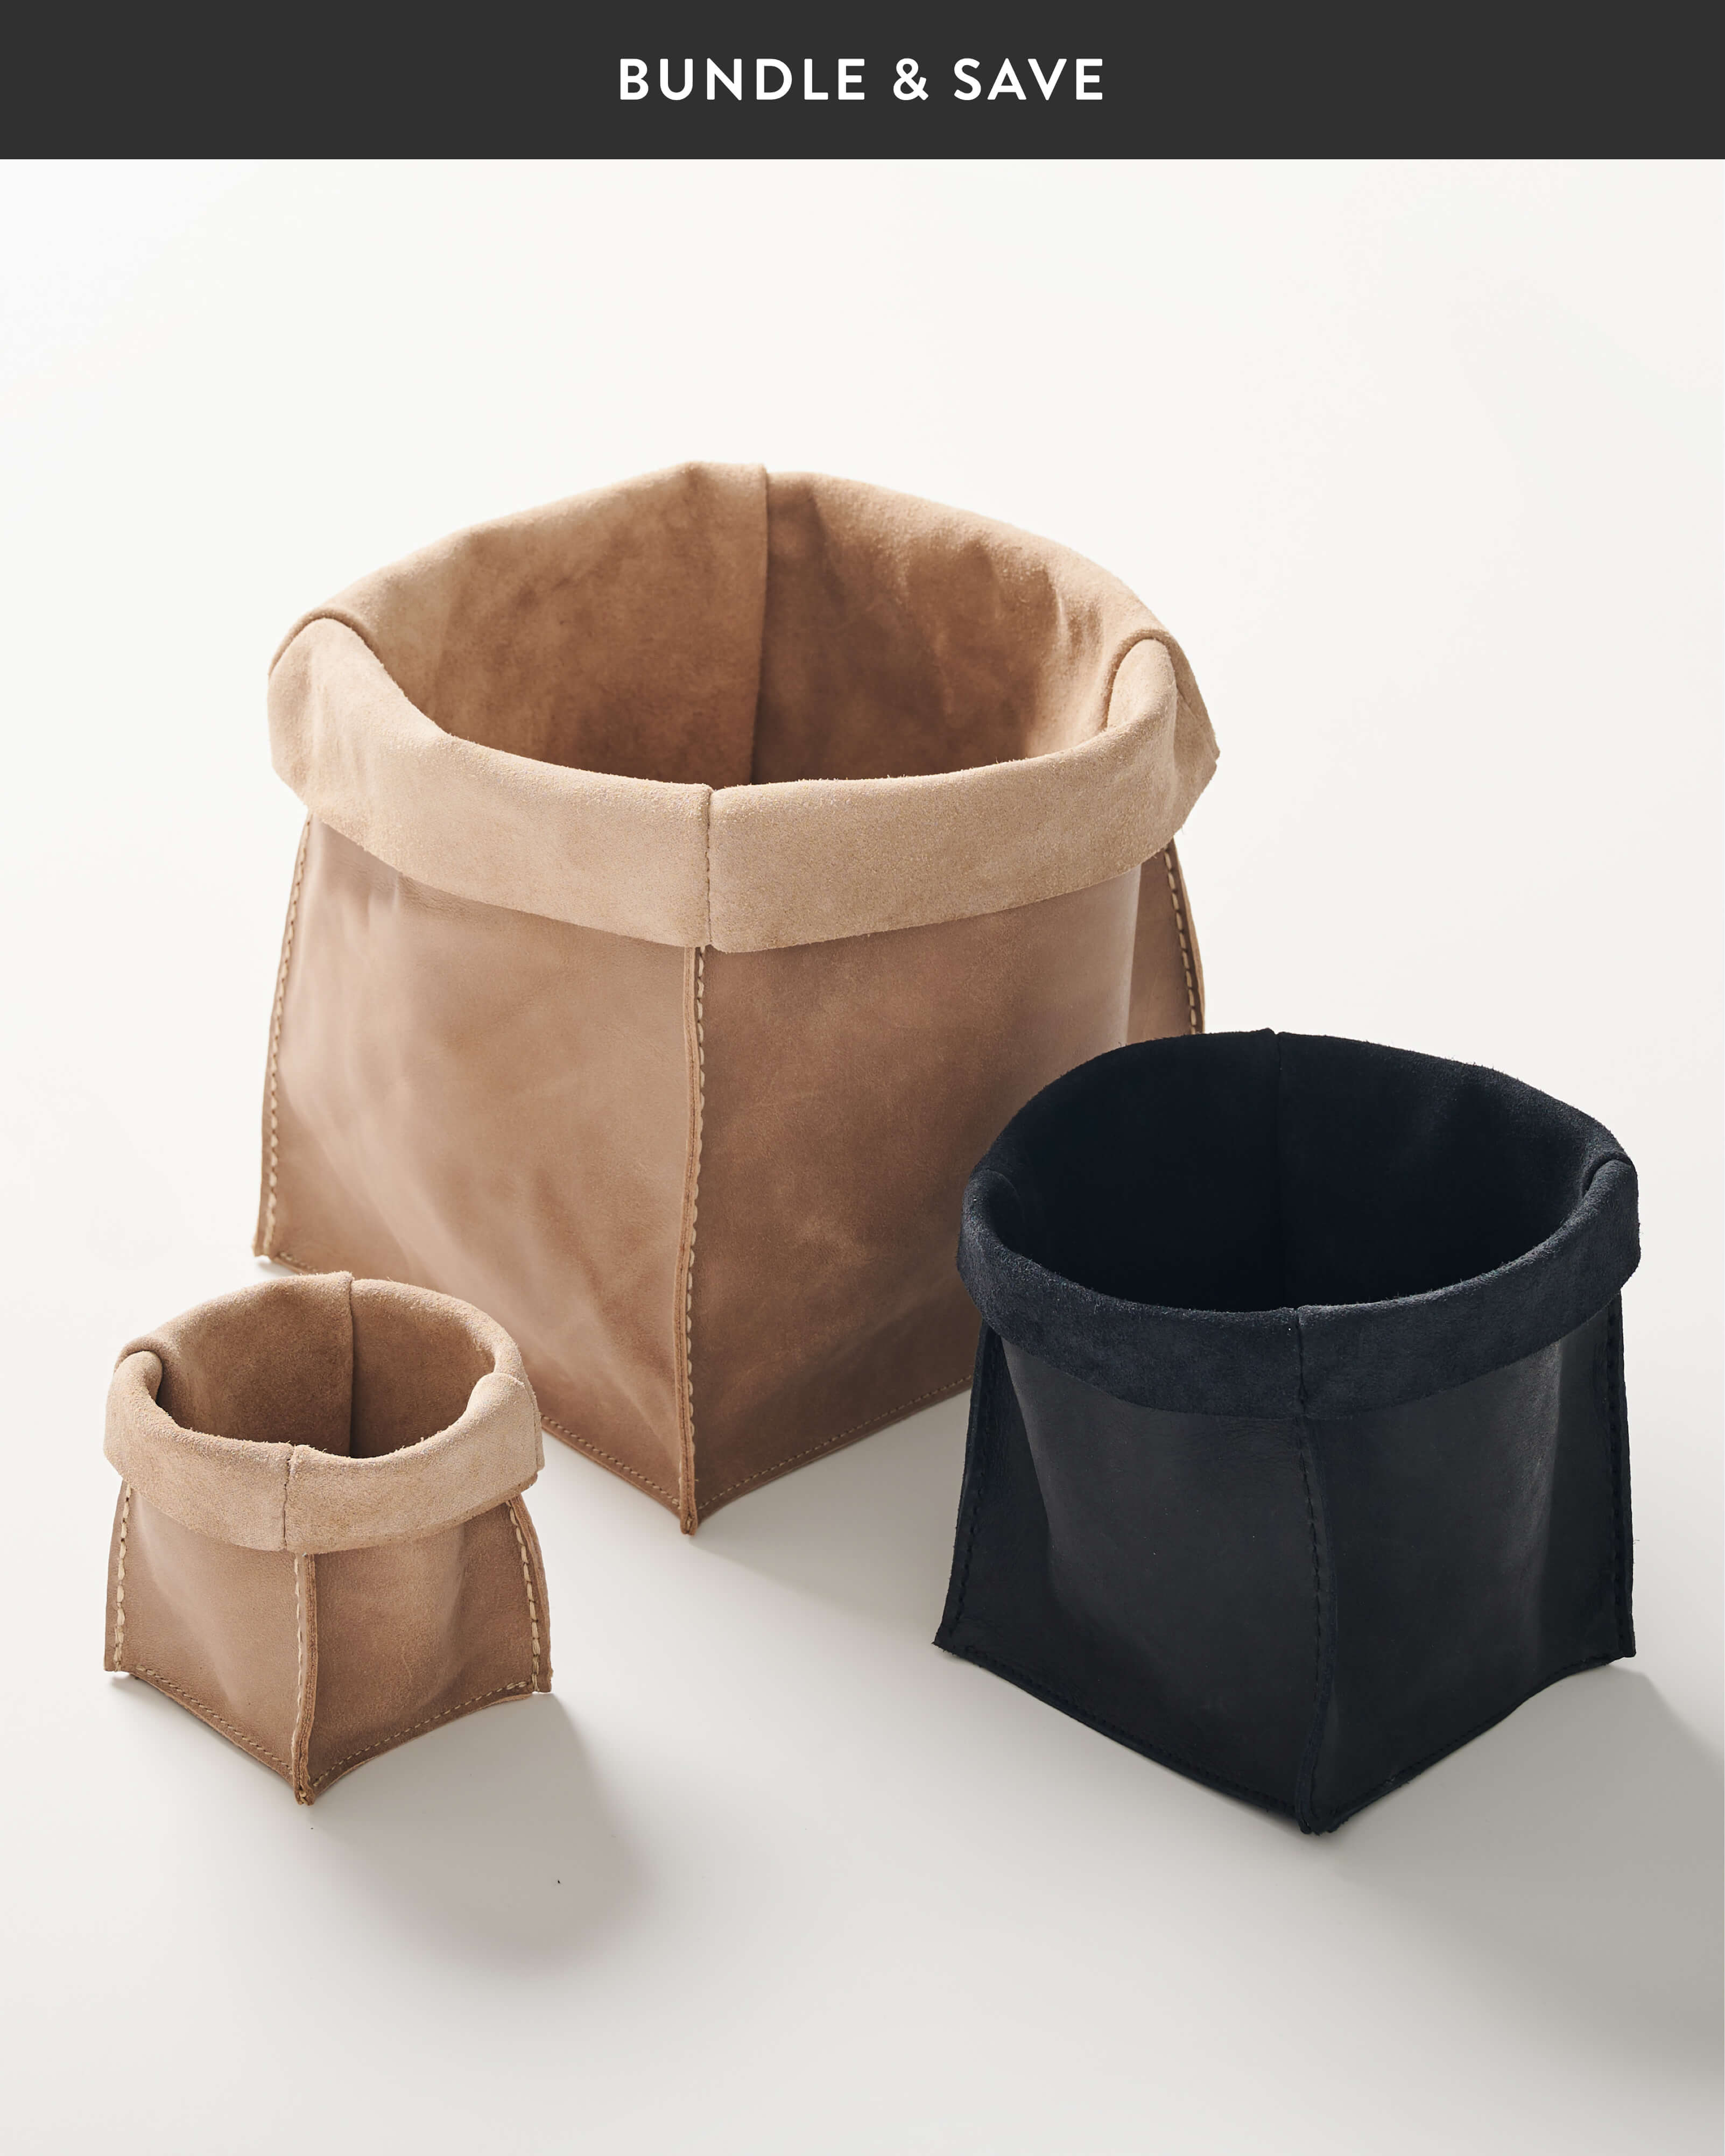 Roots-Leather Leather Accessories-Shop The Look: Home Accessories Bundle -6